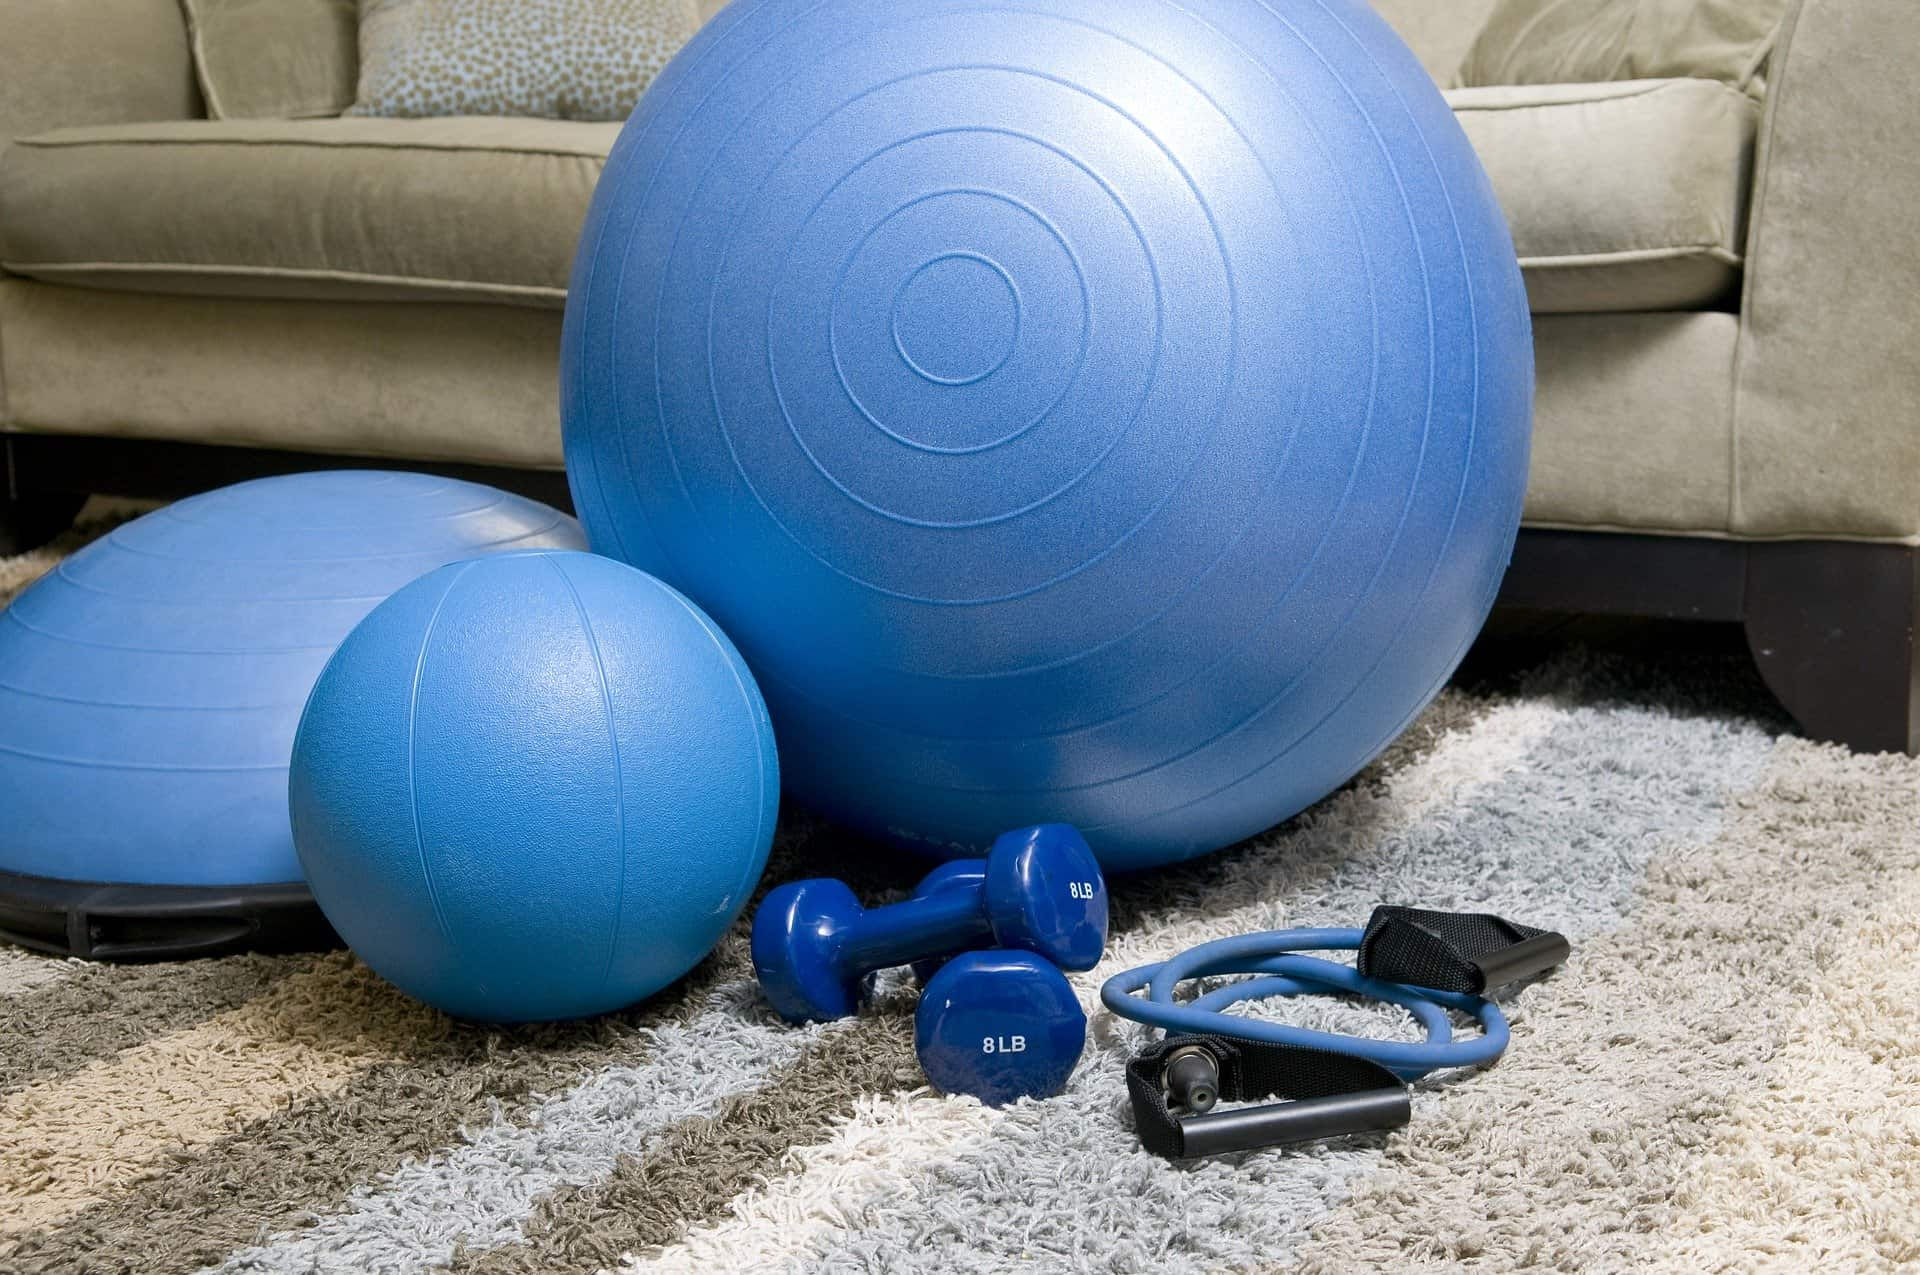 15 Workouts You Can Do At Home